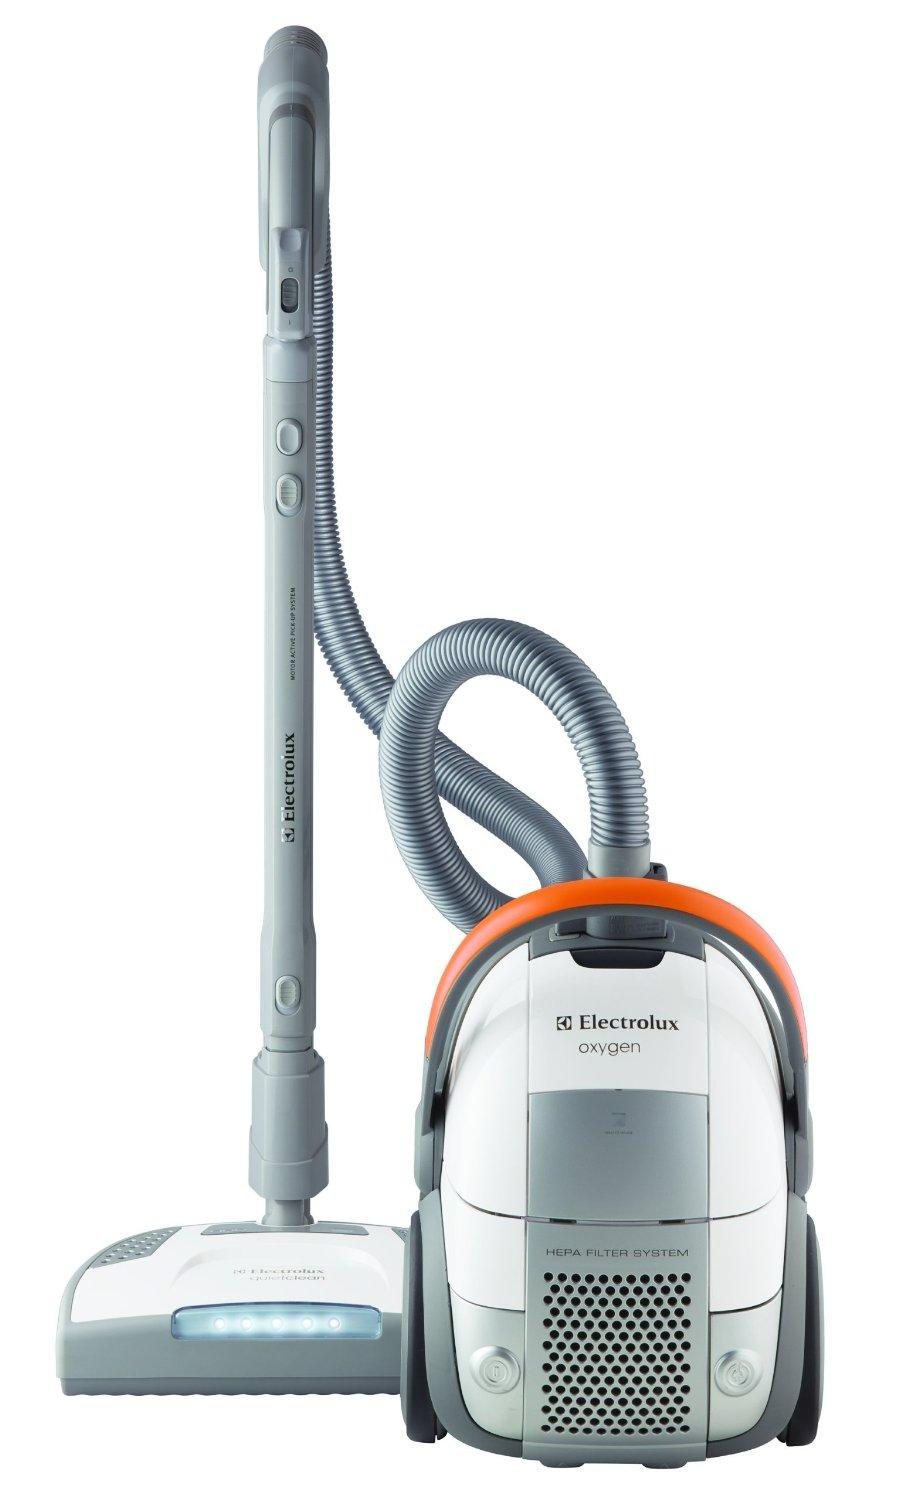 Electrolux El6988ezx Canister Vacuum Cleaner With 12 Amps